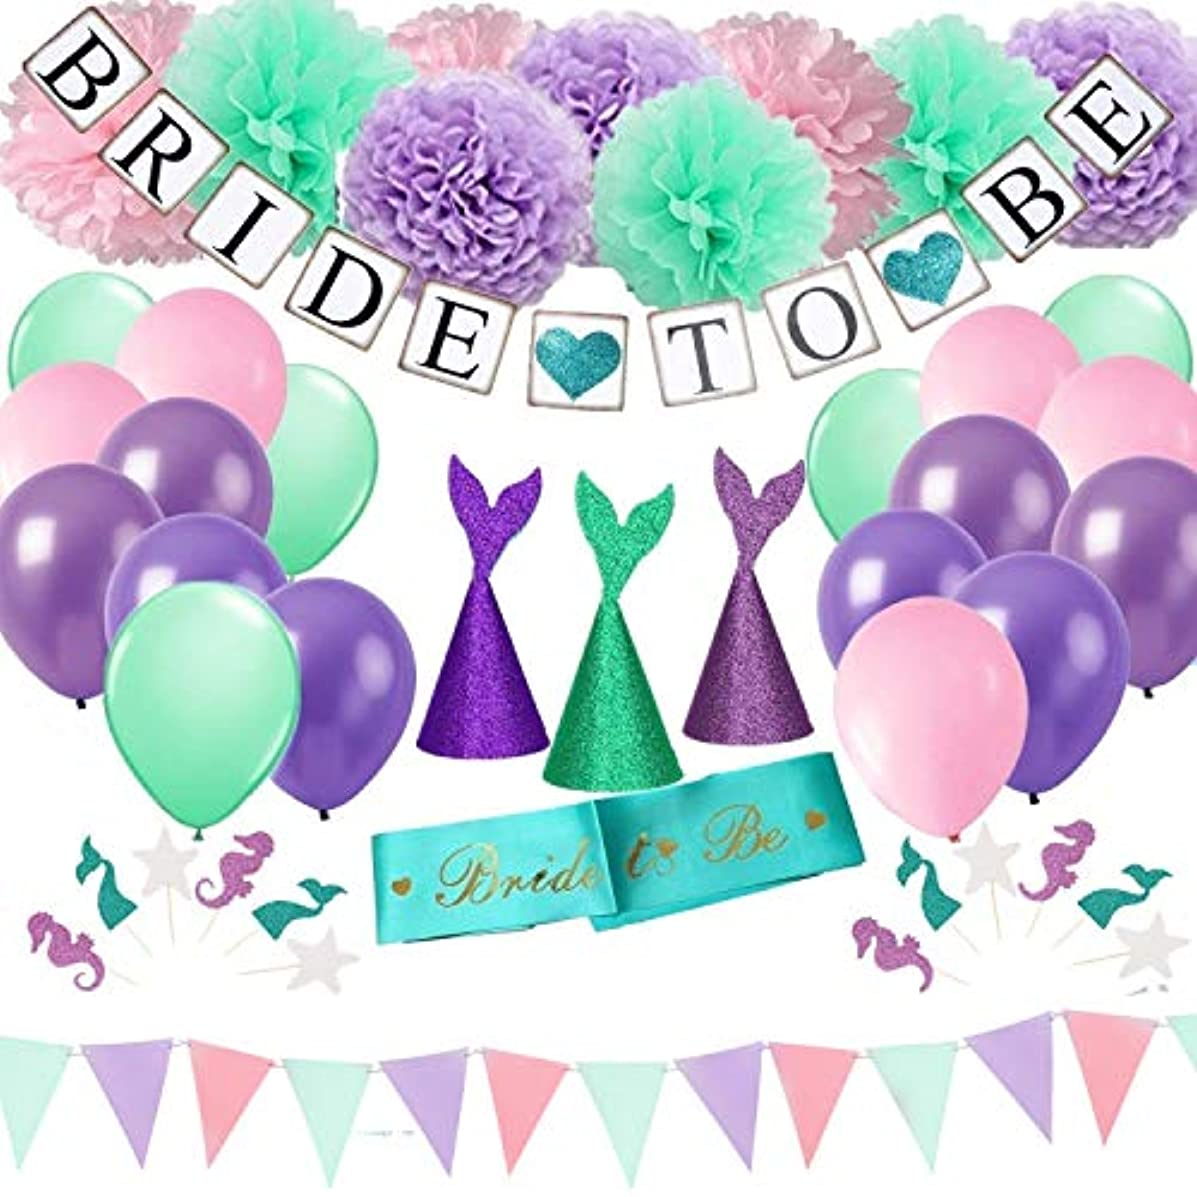 DOYOLLA Teal Bridal Shower Decorations Kit - 56pcs Tissue Paper Flowers, Bride to Be Banner & Sash, Mermaid Balloons, Party Hats, Cupcake Toppers for Under The Sea Underwater Wedding Party Decor